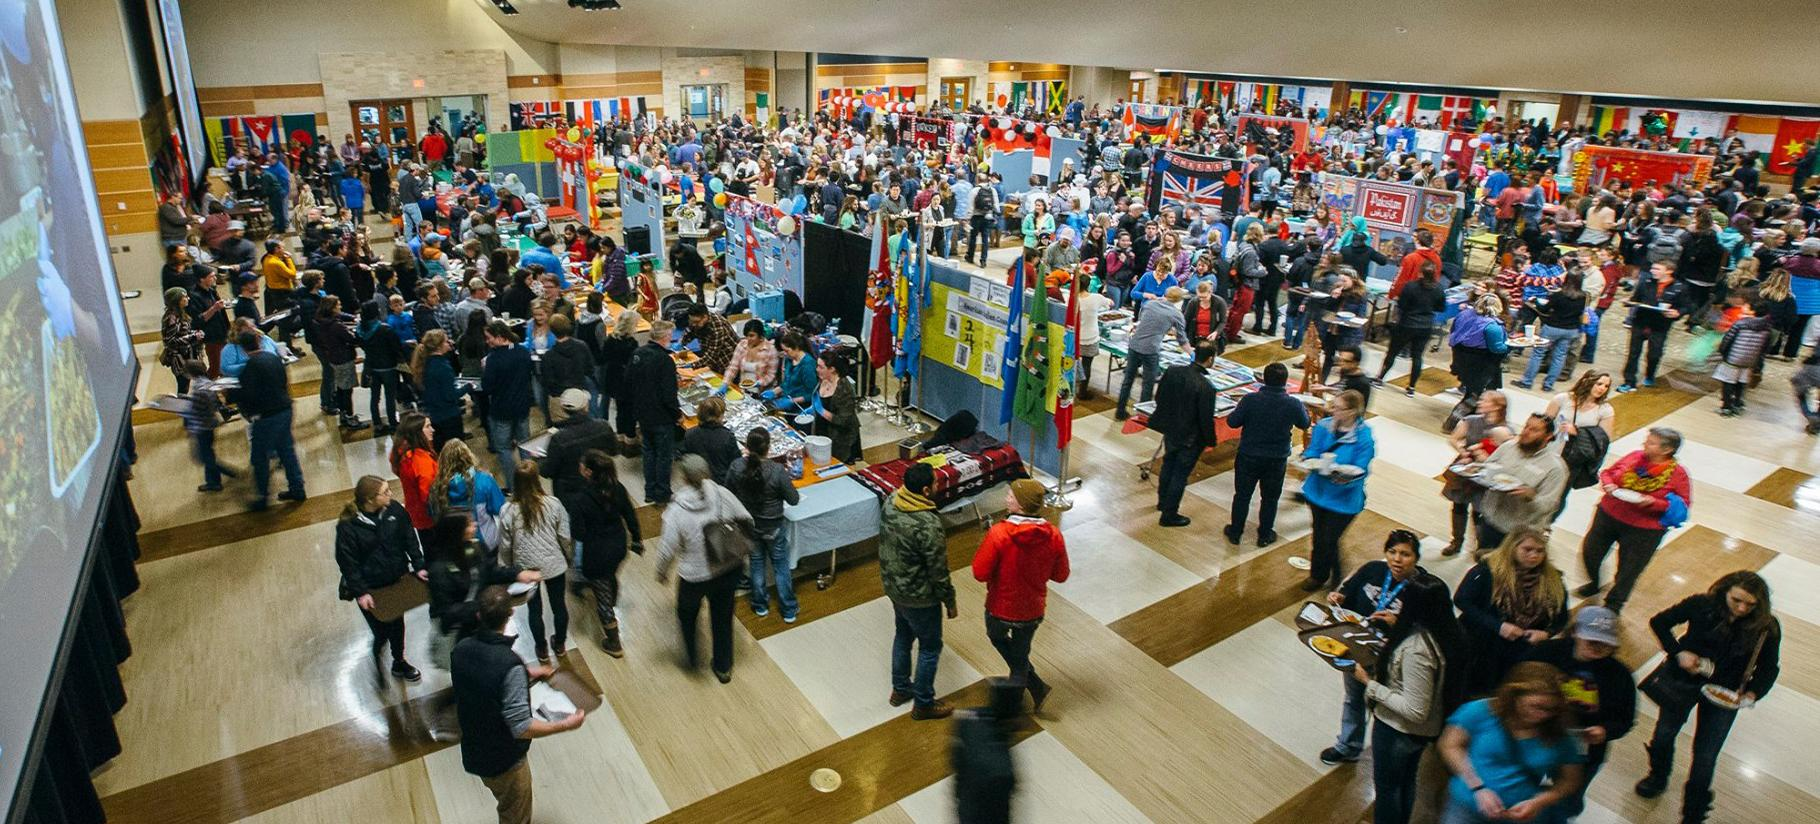 Ariel view of the 34th Annual International Food Bazaar